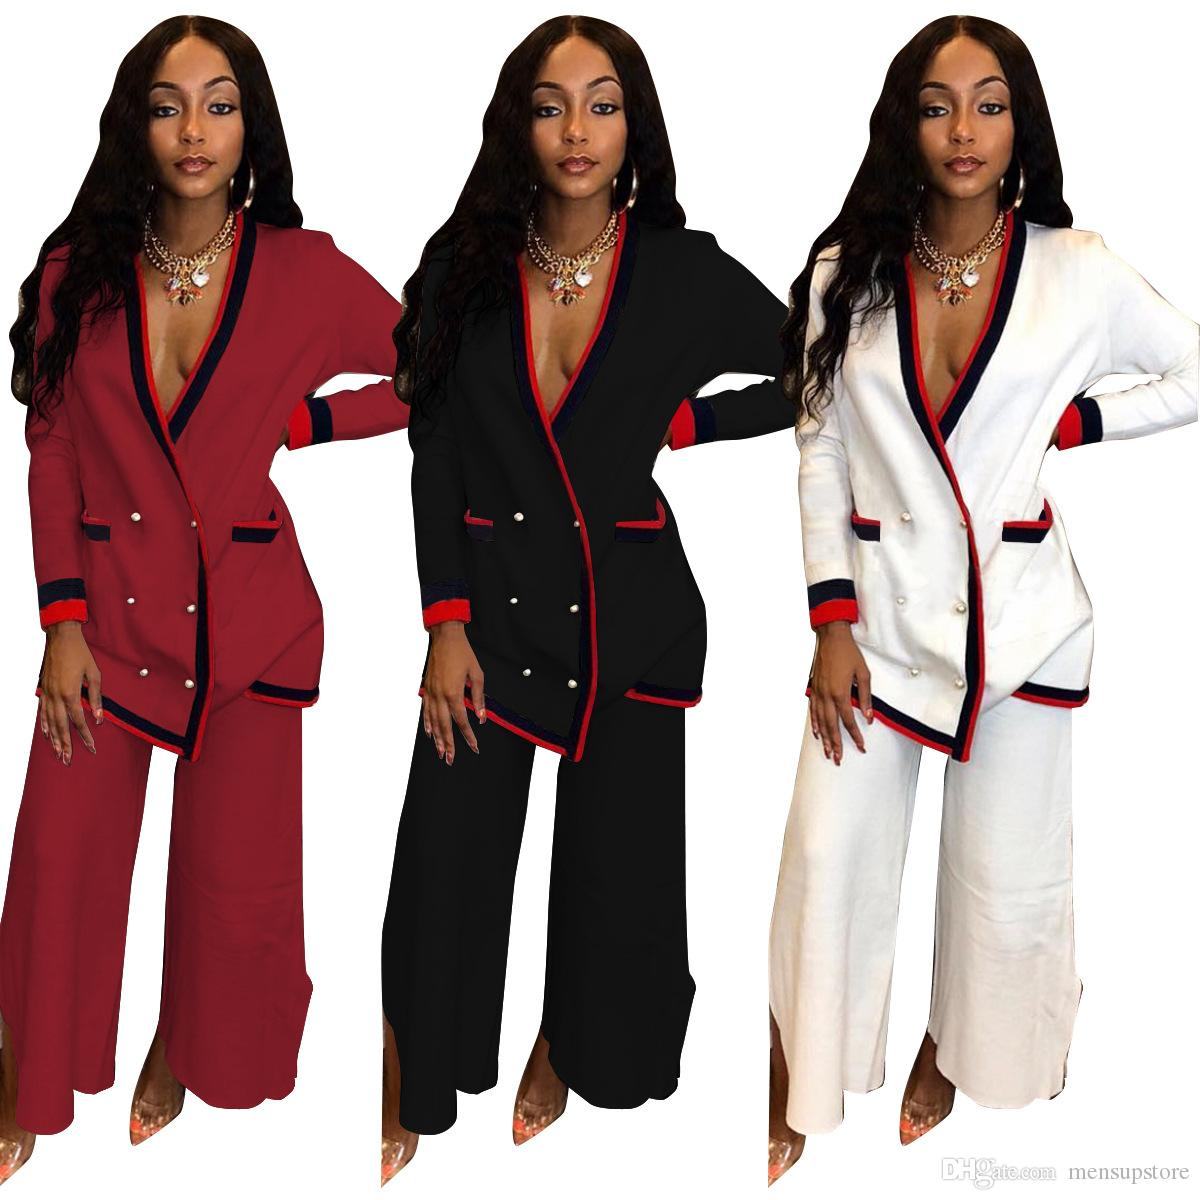 Femmes Mode Costumes Blazers Pantalons Survêtements Tops Costumes breasted simple Pantalons